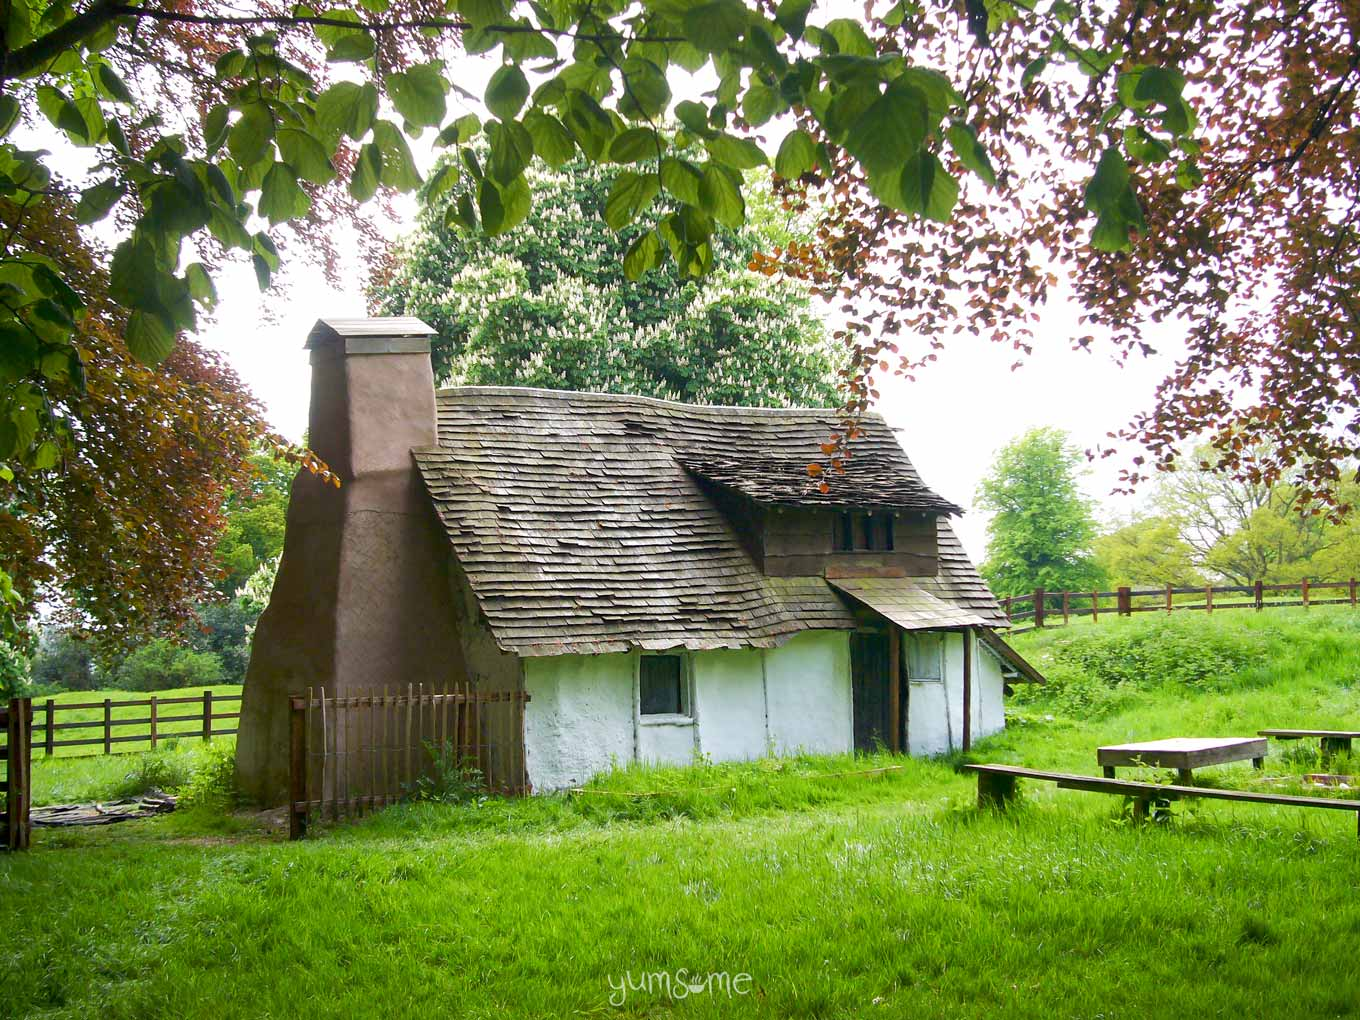 Holdenby 17th century cruck house exterior | yumsome.com